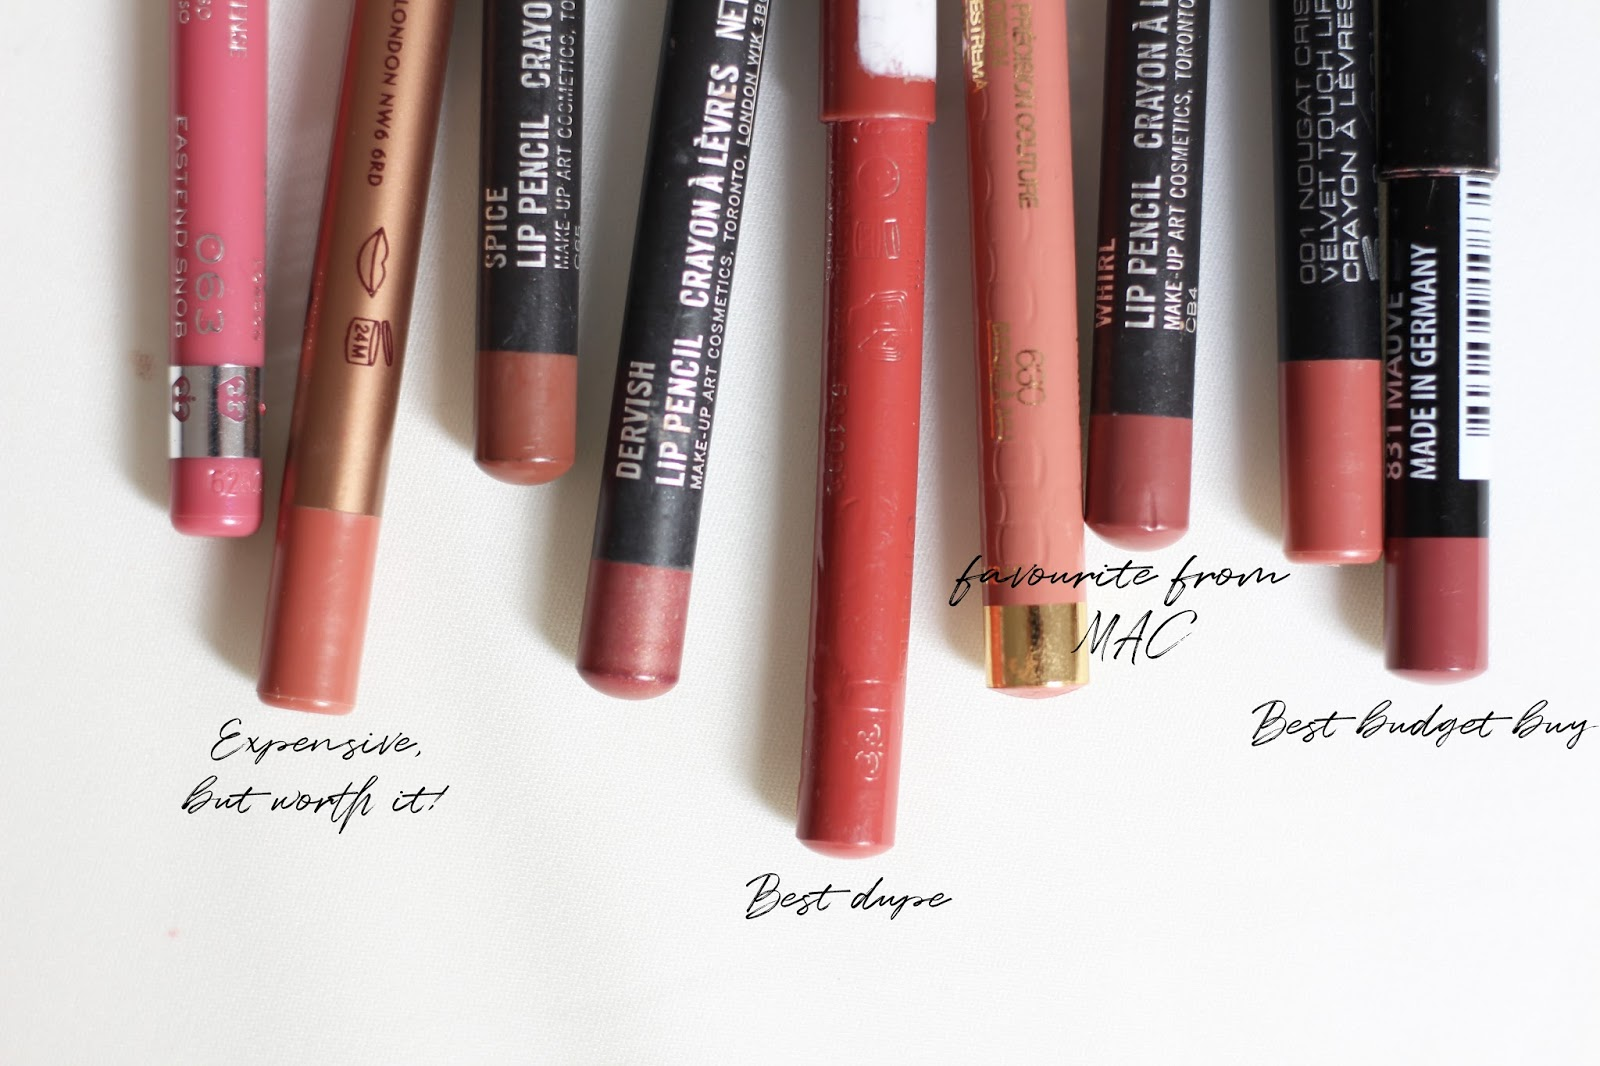 Exceptionnel Jodie Melissa: My Most Worn, Everyday Lip Liners SO47